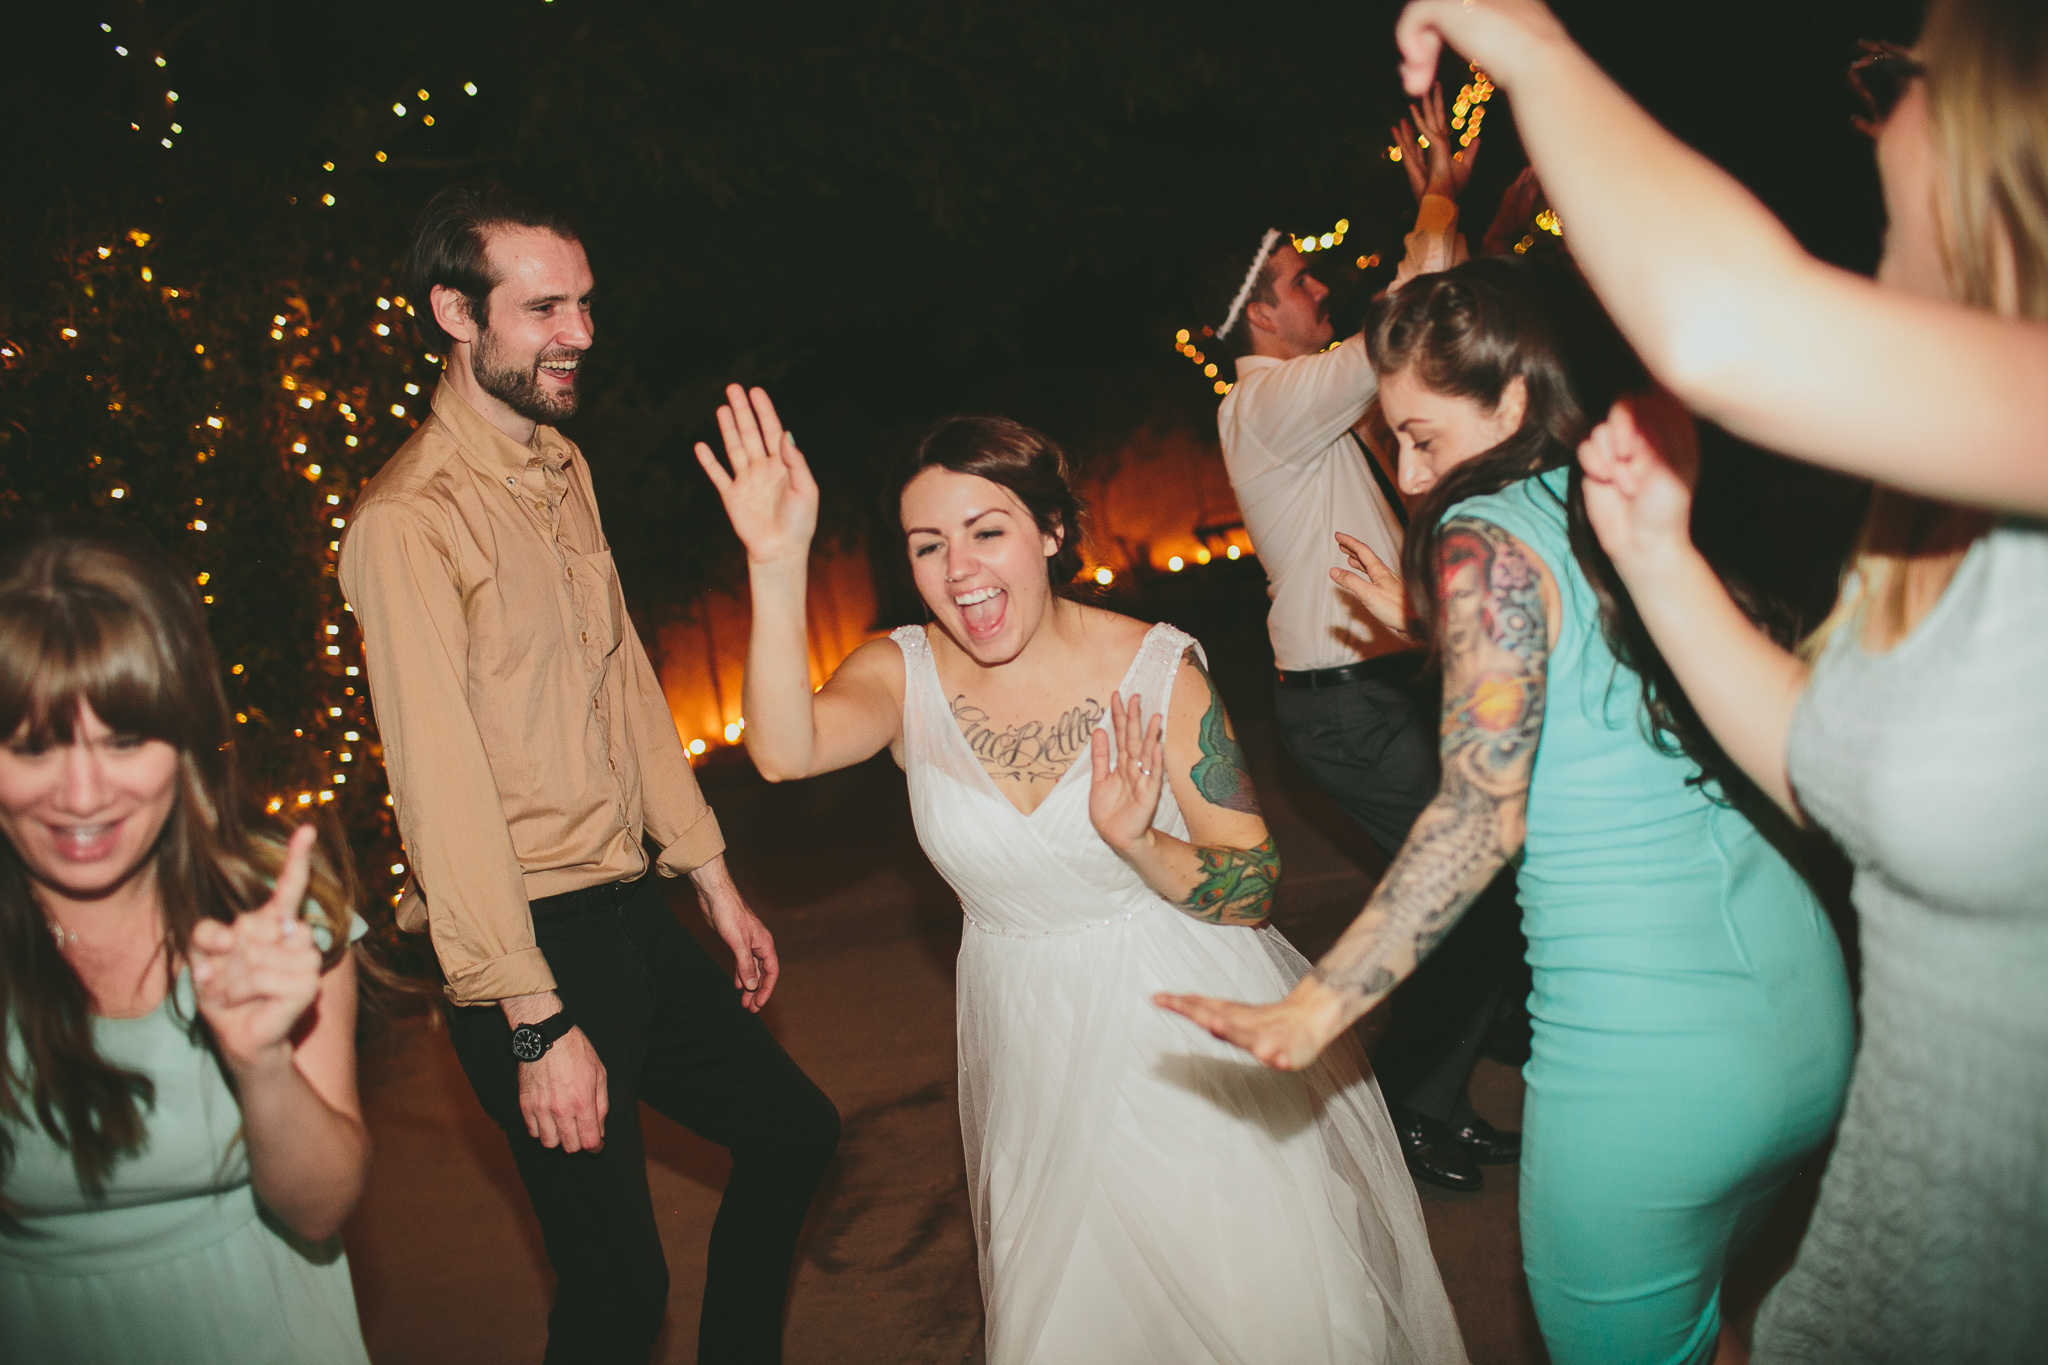 Amy+Nick-WEDDING_KellyBoitanoPhotography20151219_0174